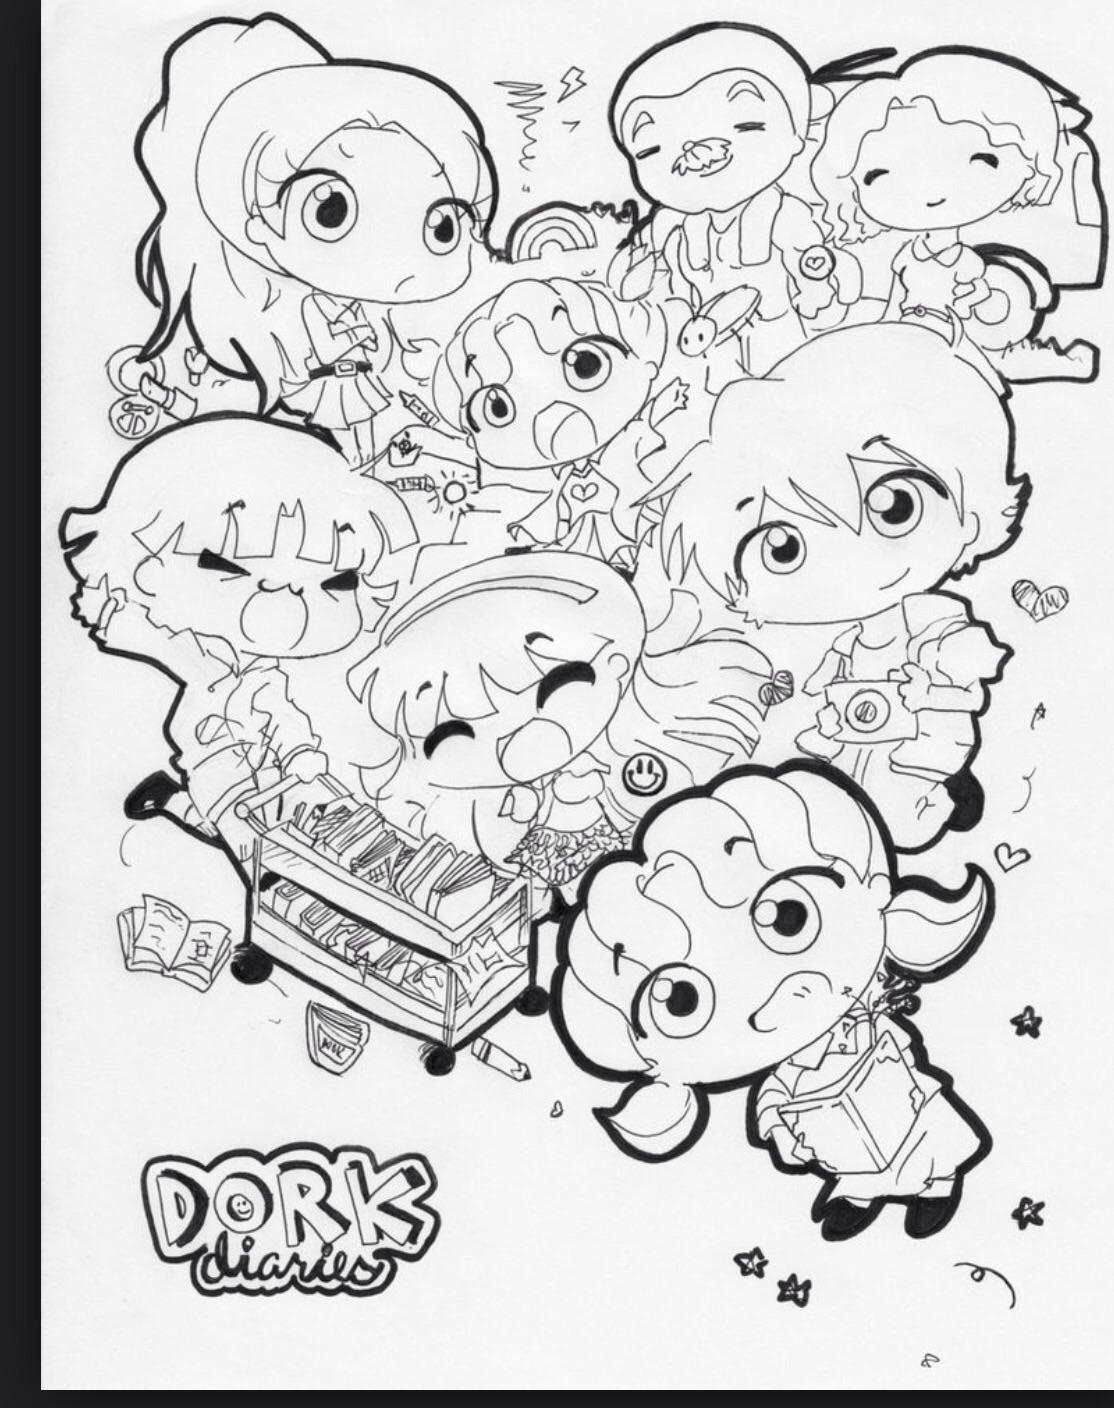 What dork diaries character are you? (1)